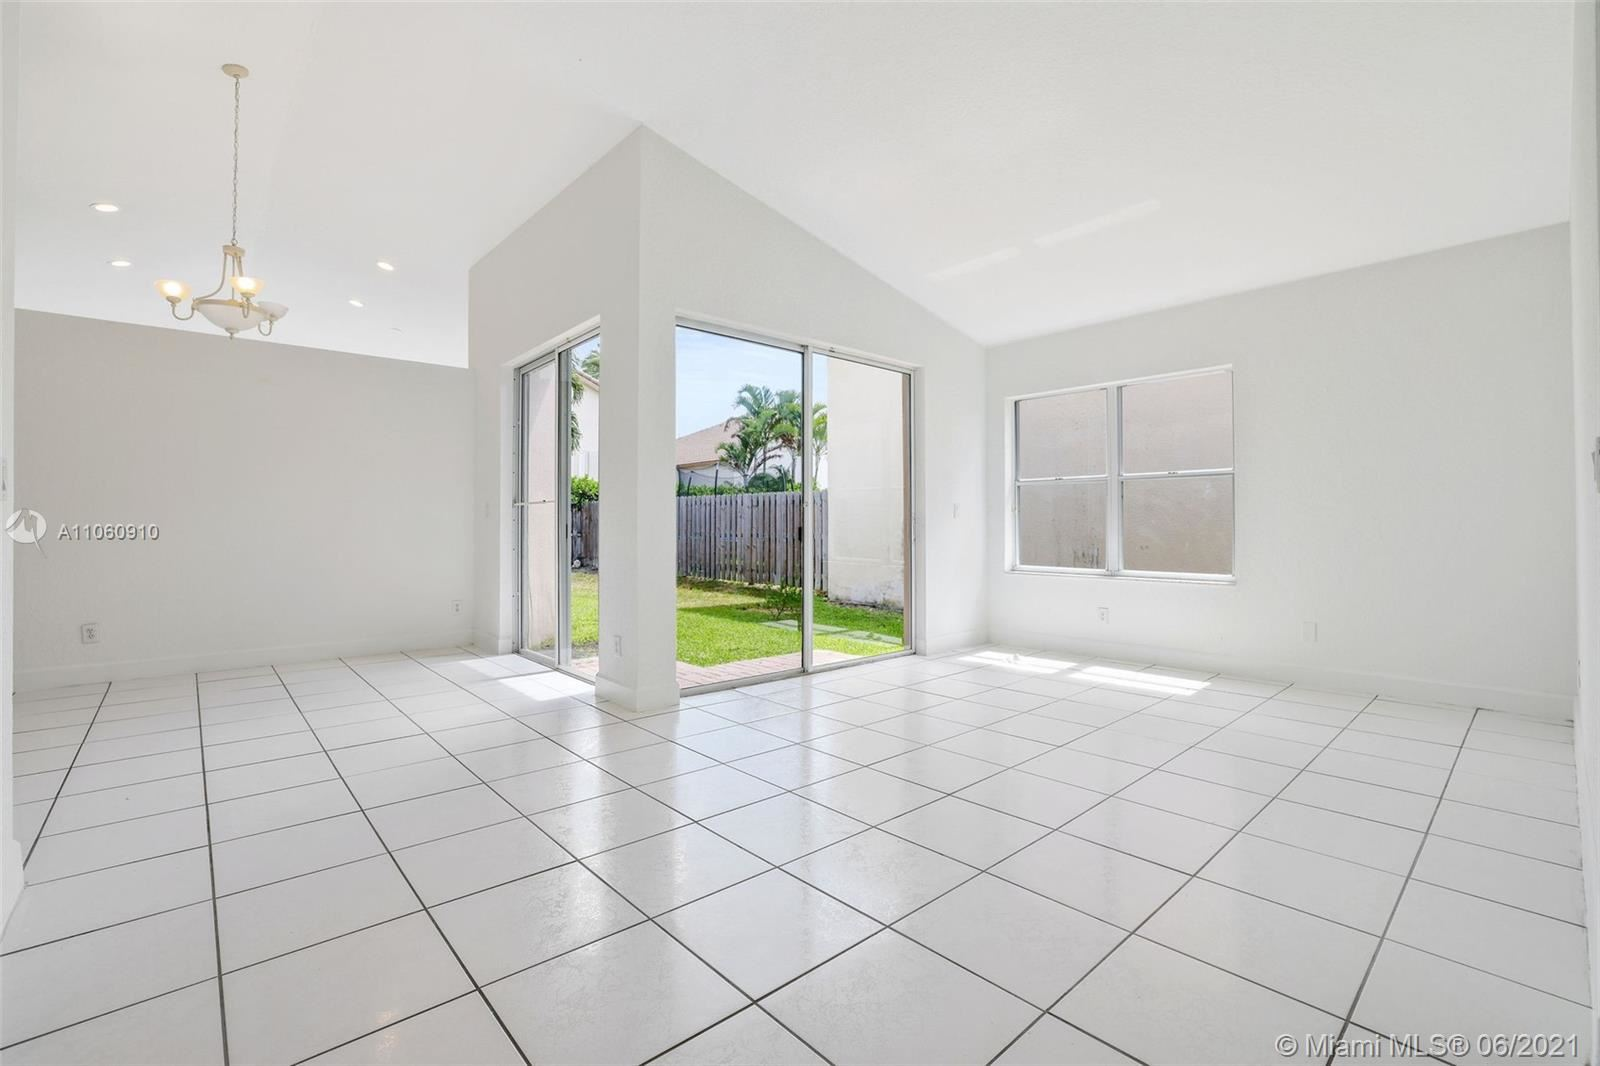 Photo of 9763 NW 29th St, Doral, FL 33172 (MLS # A11060910)